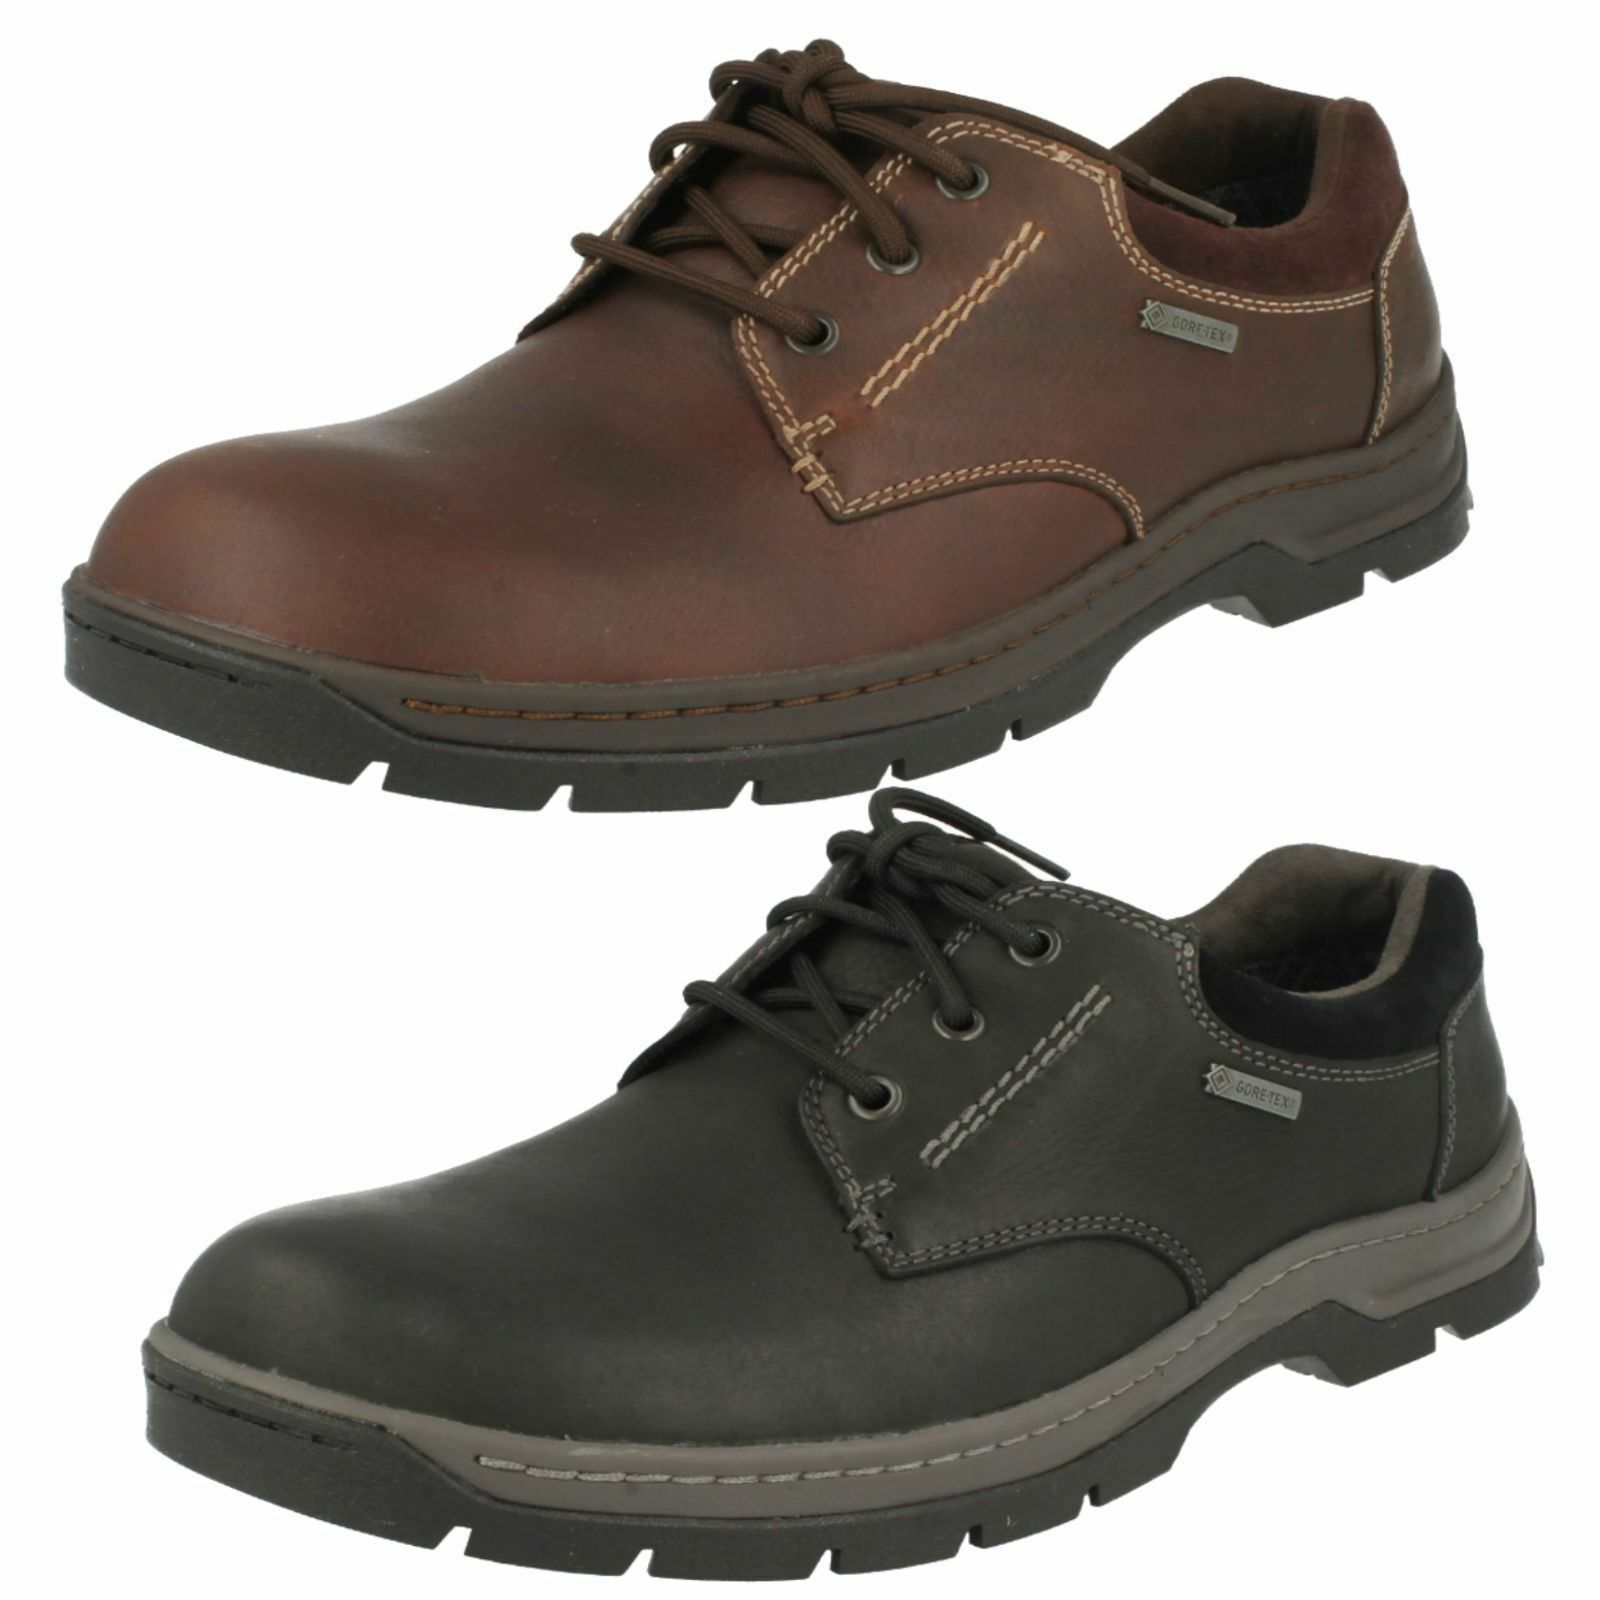 Mens Clarks Stanten Walk GTX Leather Lace Up Waterproof shoes G Fitting